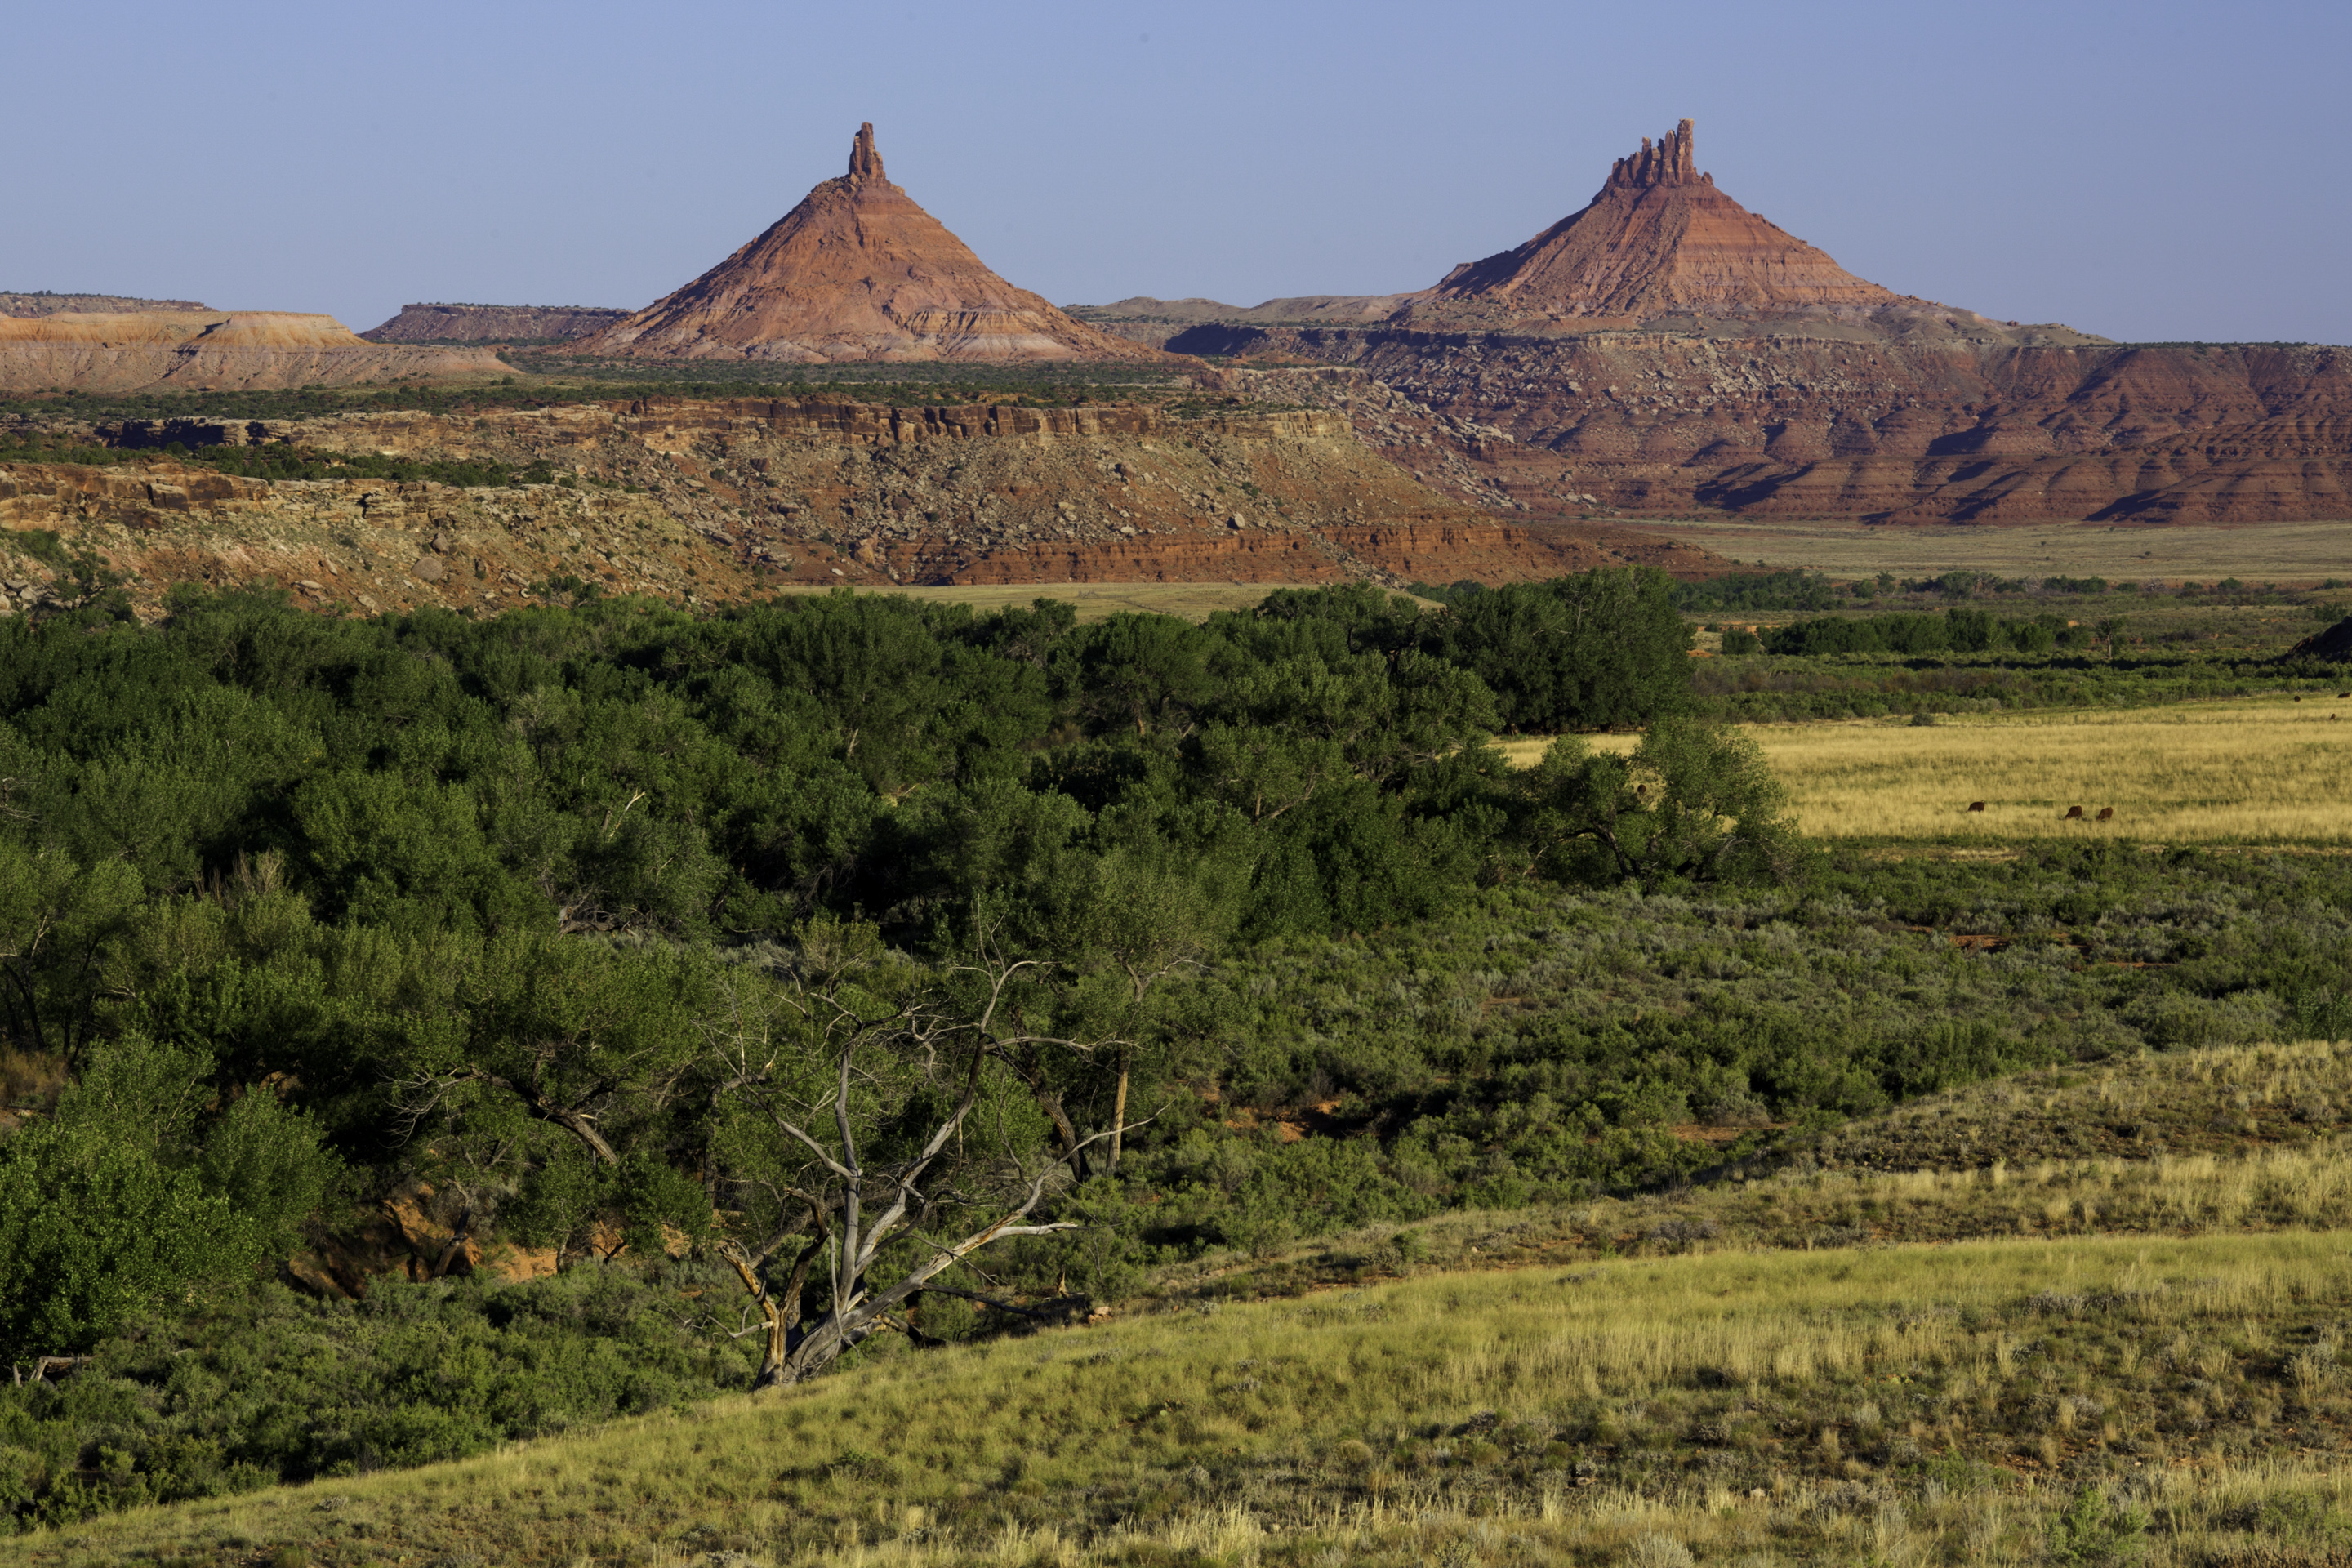 Presidential Authority and the Antiquities Act